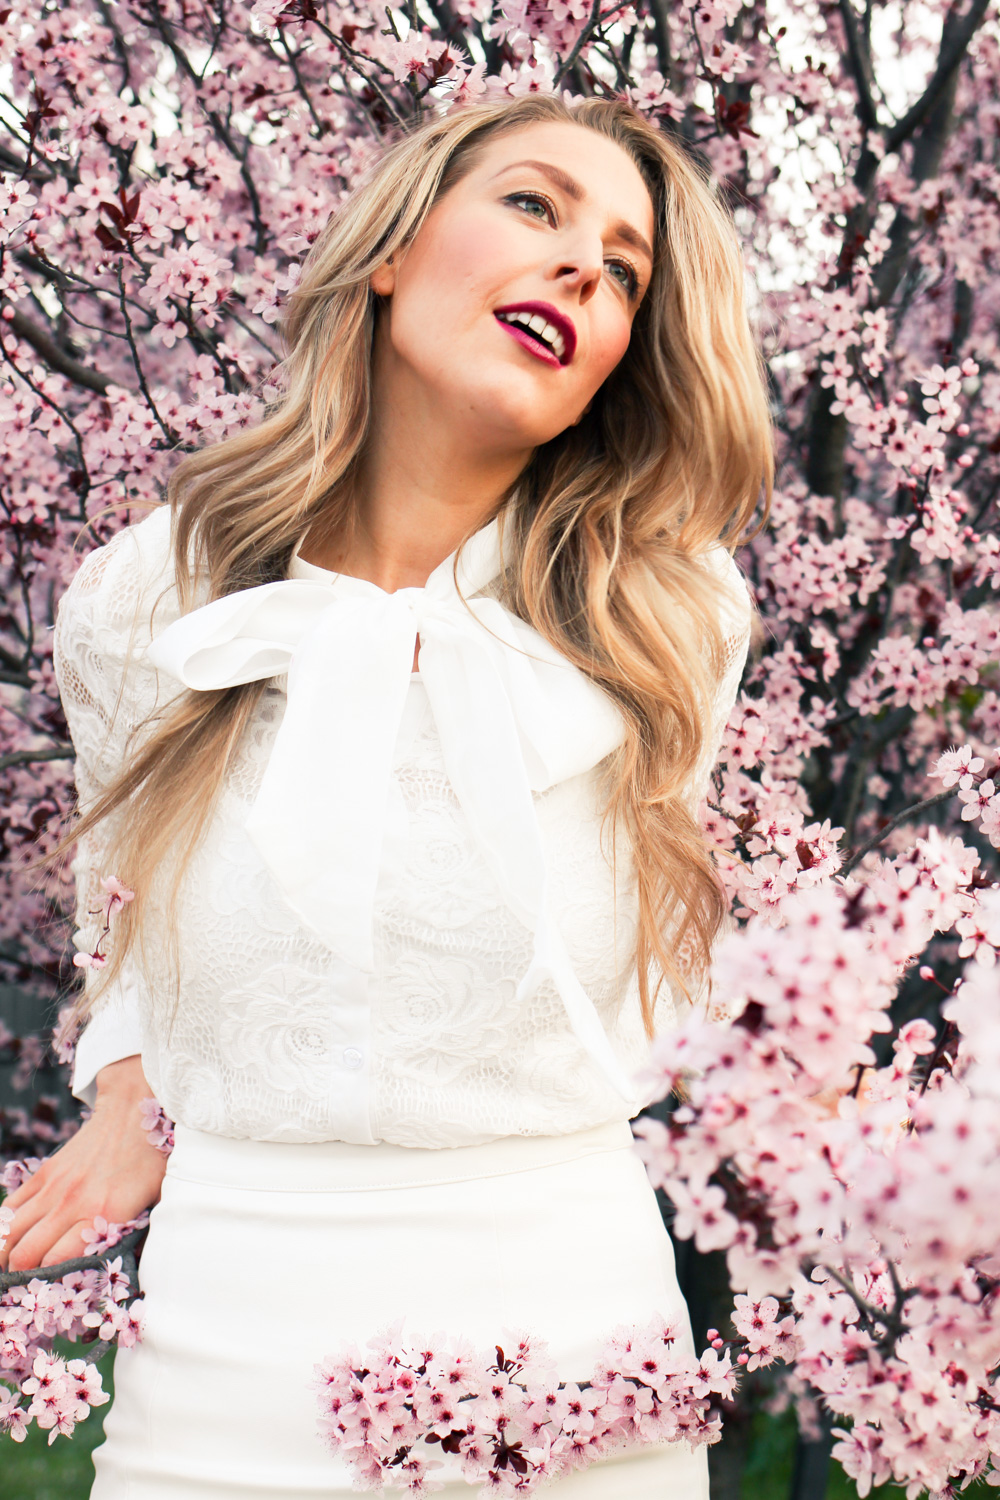 Visit the Goldfields Girl blog for more fashion and lifestyle inspiration